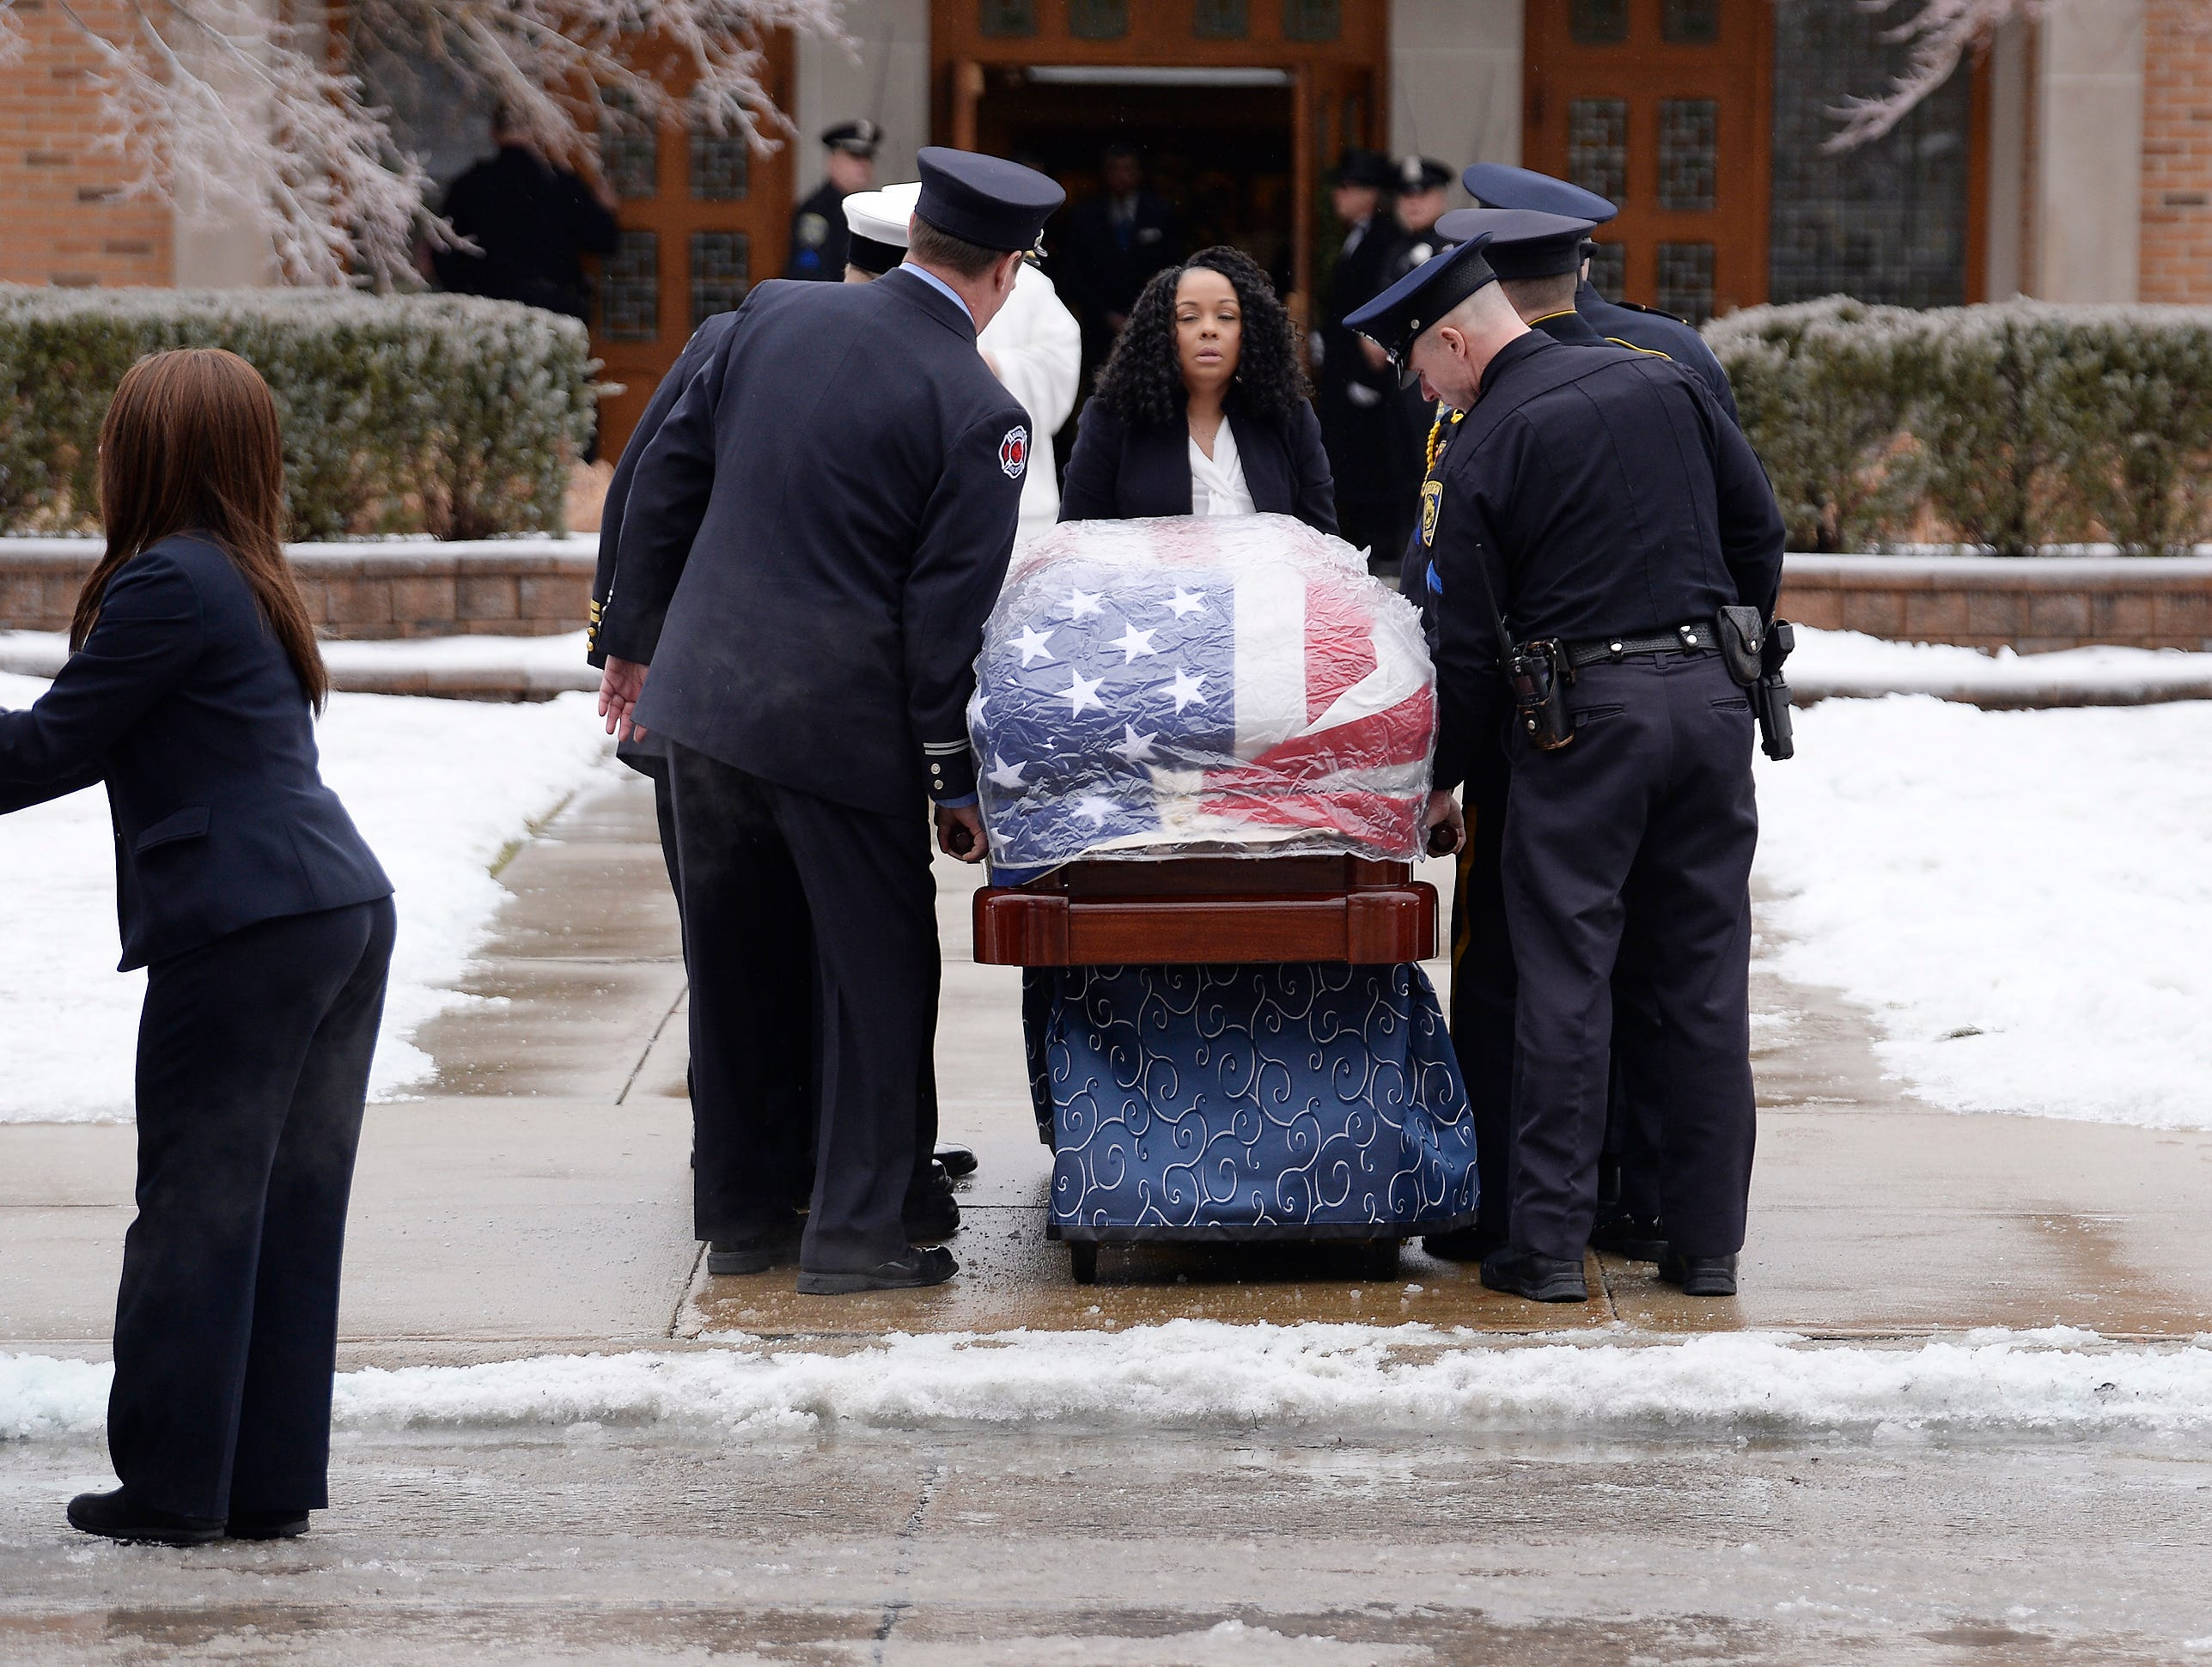 City of Dearborn first responders carry the casket of former U.S. Rep. John D. Dingell into the Church of the Divine Child for his funeral Tuesday morning.